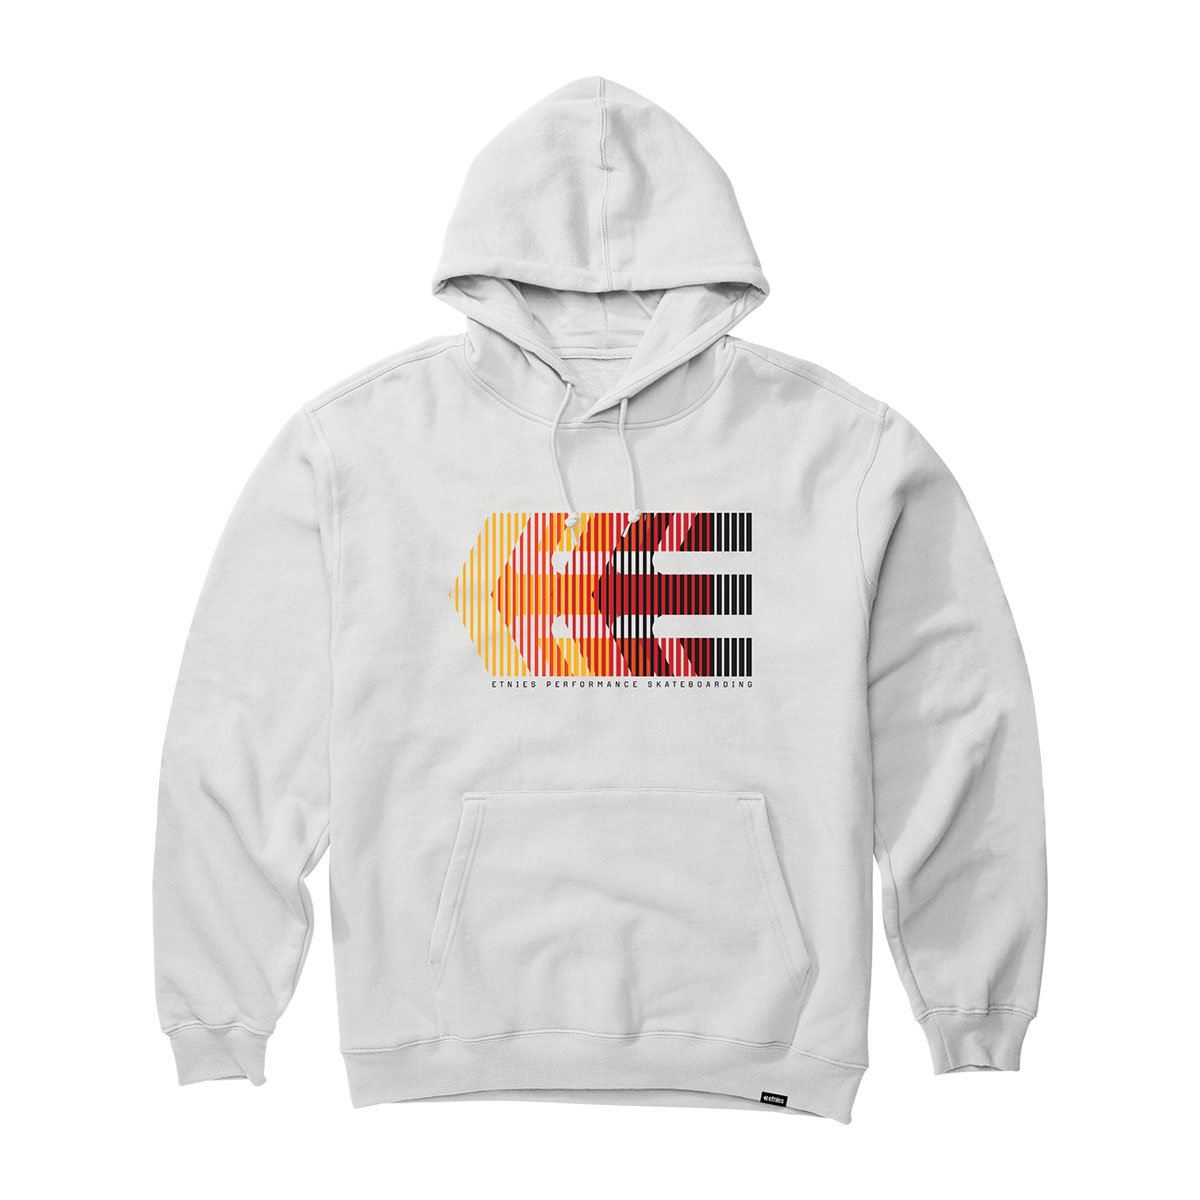 AFTER BURN HOODIE